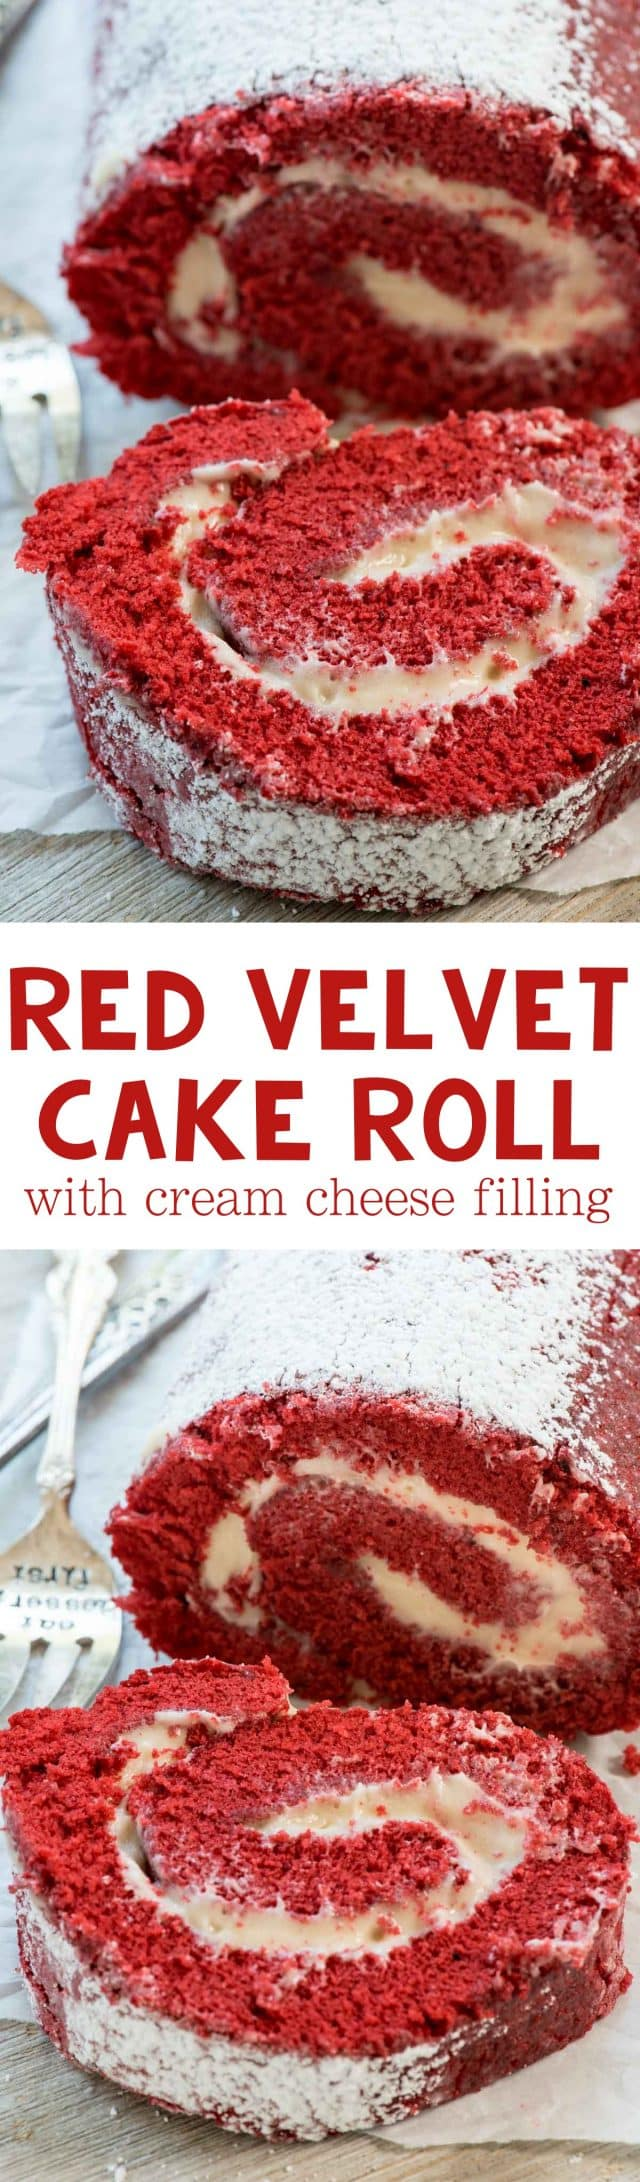 Red Velvet Cake Roll - this easy red velvet cake recipe is rolled up in a roulade - it's the perfect cake for any occasion!